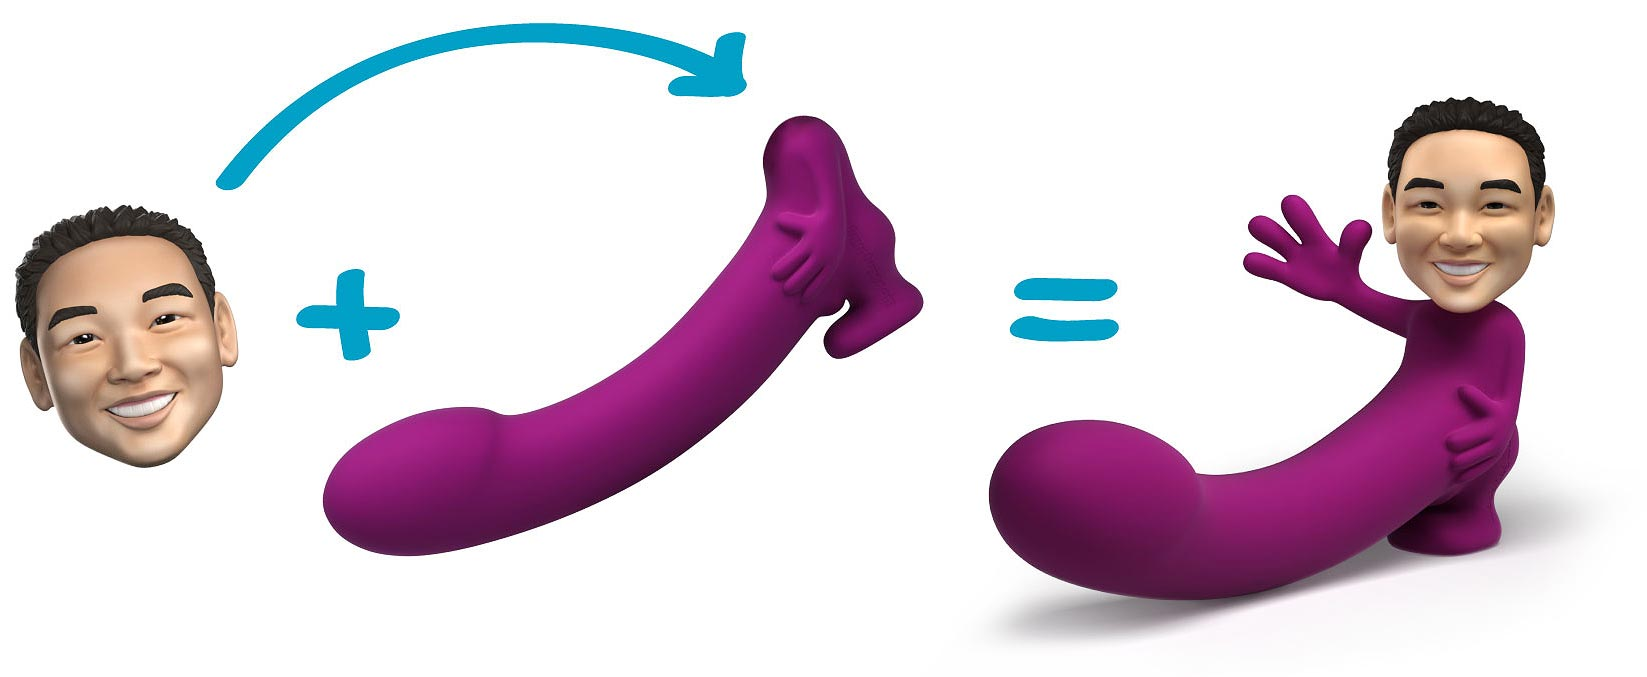 You can get a model of your partner's face at the end of your dildo